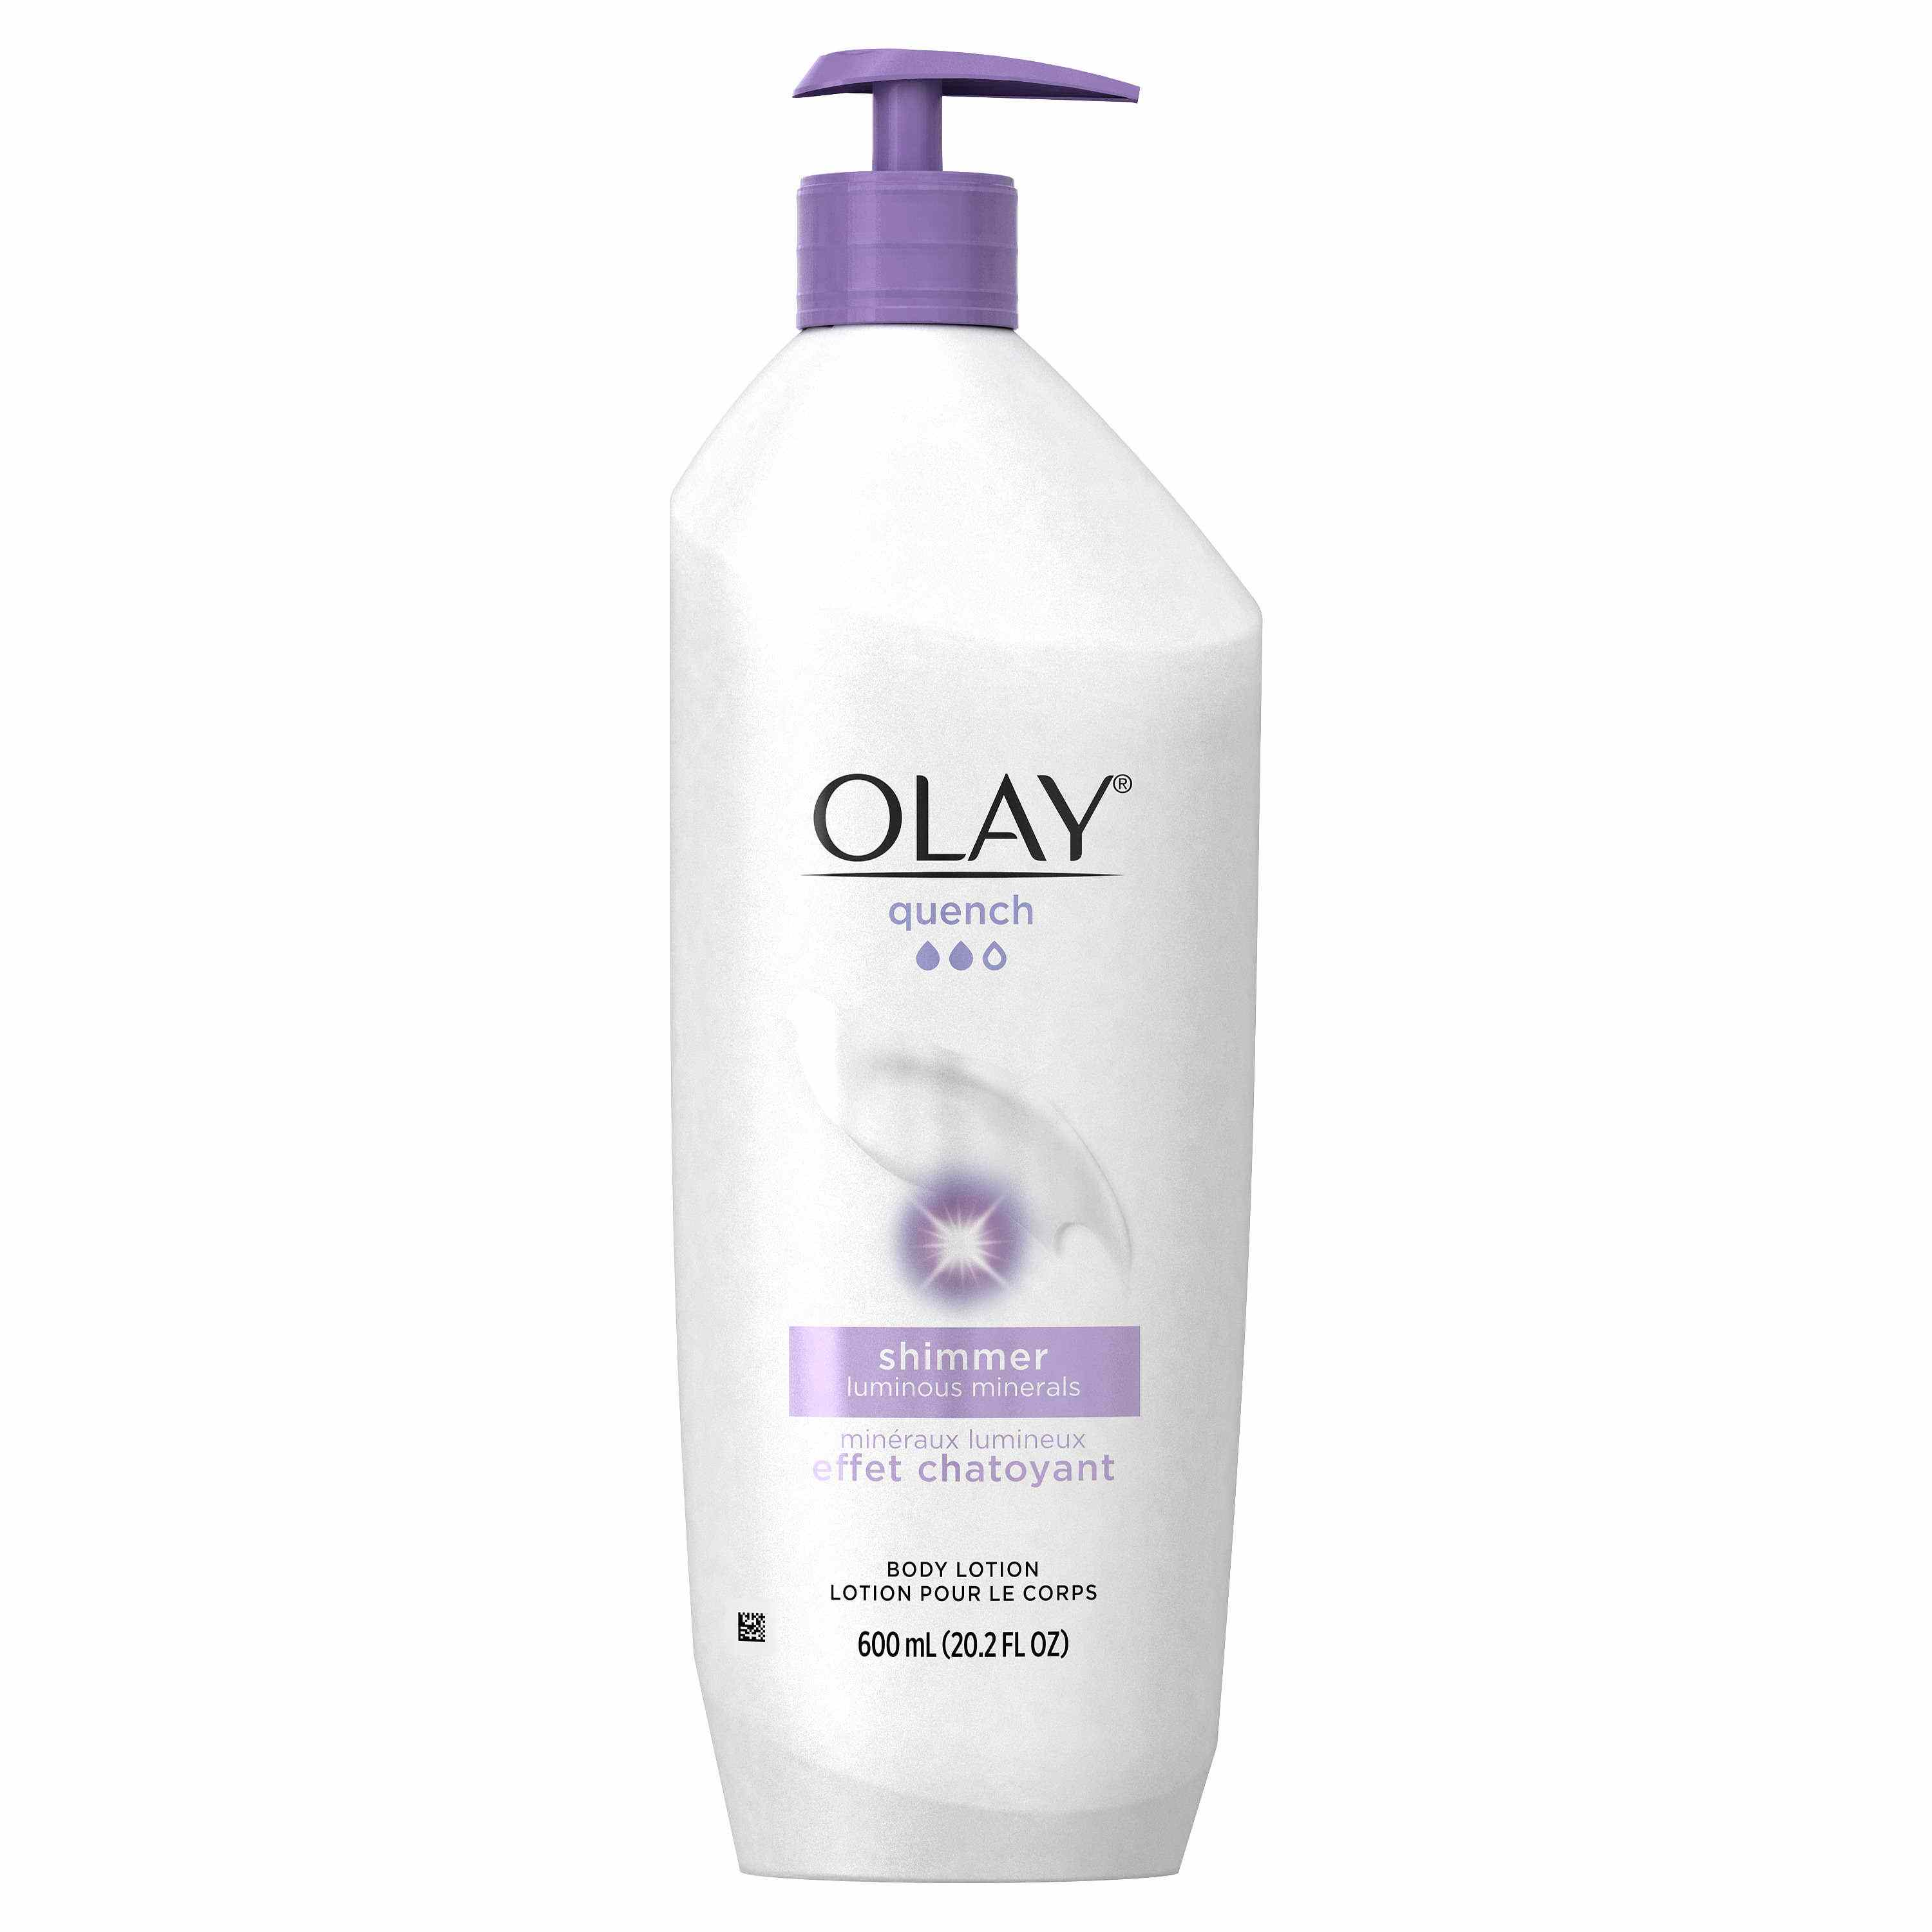 e16c998449a3 The 12 Best Body Lotions of 2019